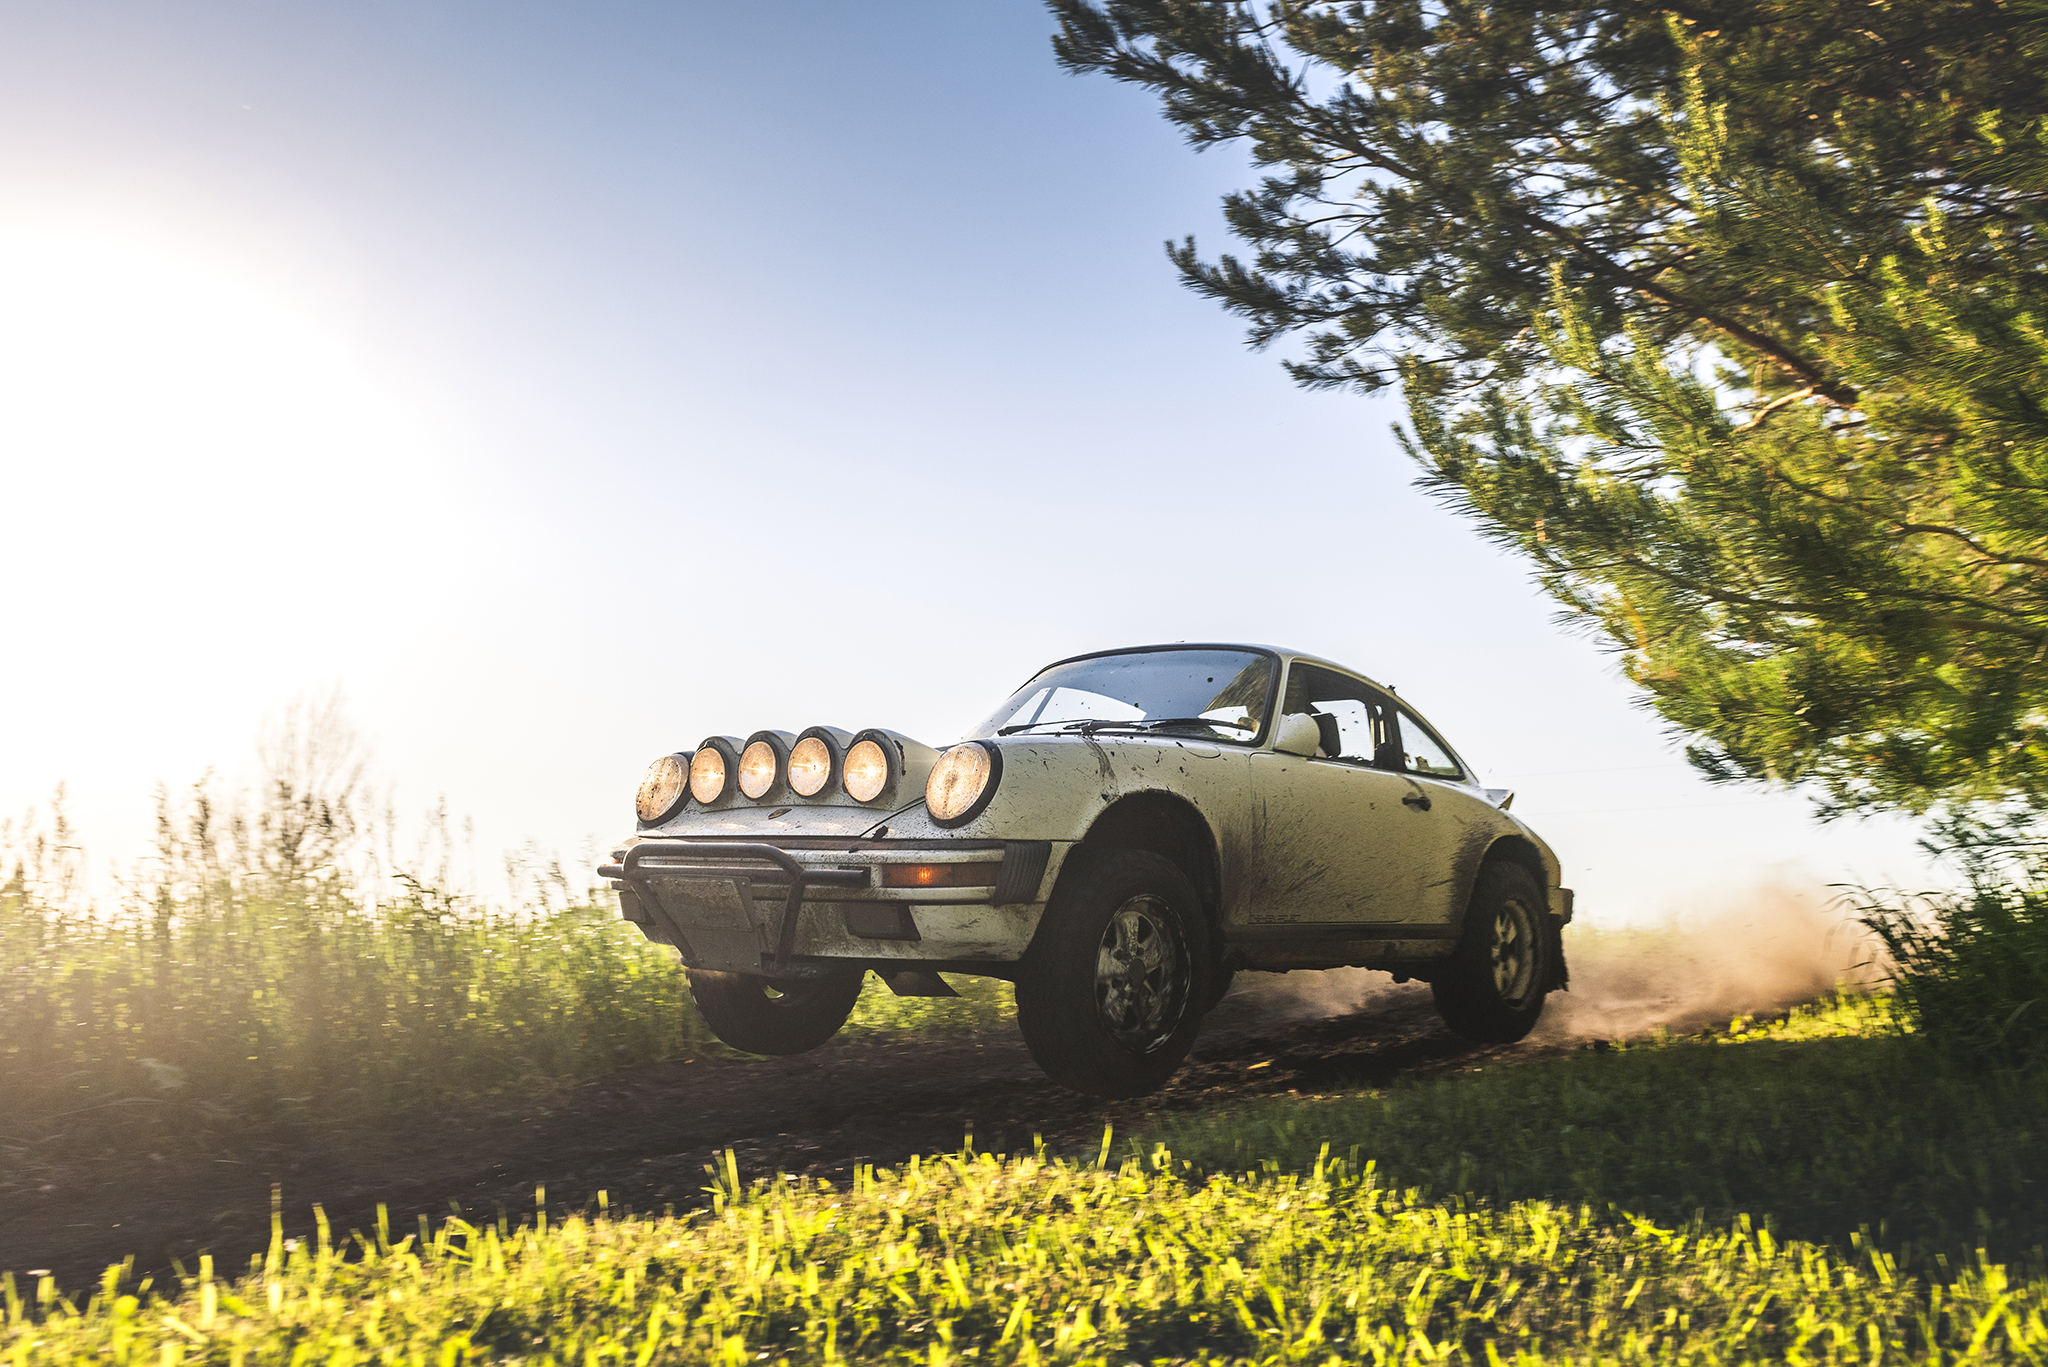 Get up enough speed and the Keen Project Safari 911 will soar to new heights. | Alex Bellus photo